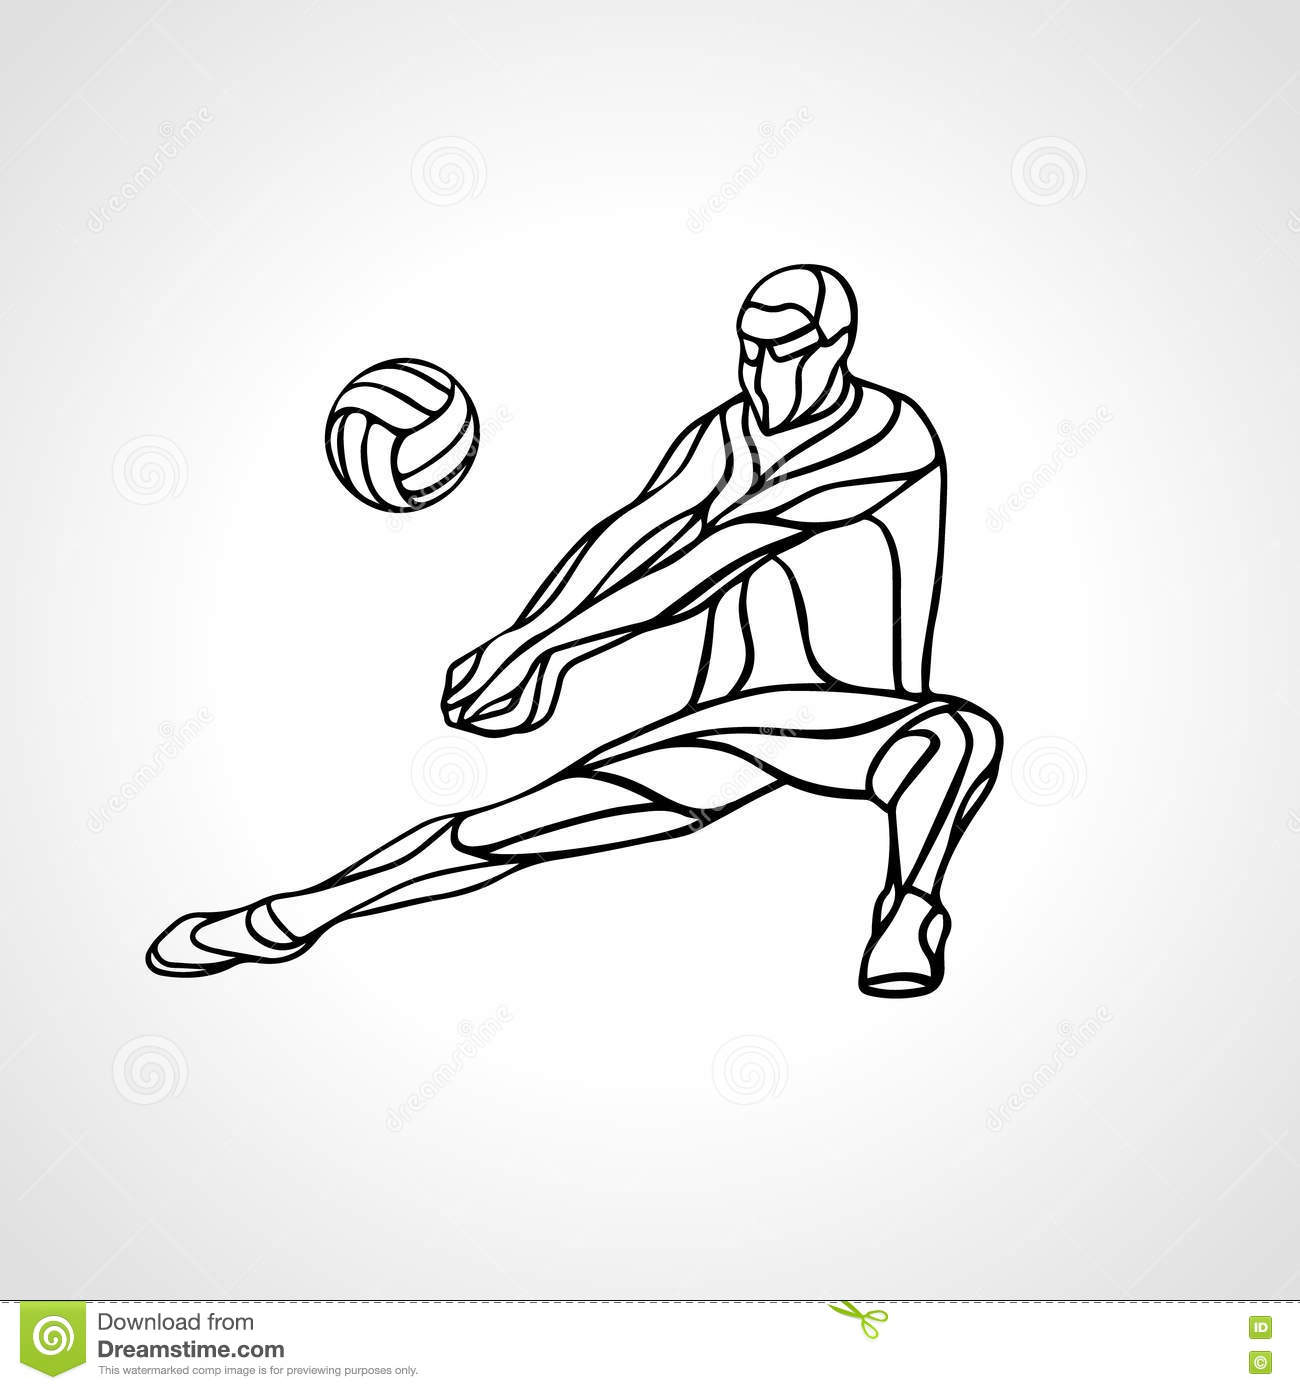 Volleyball Player Outline Silhouette Stock Vector ...